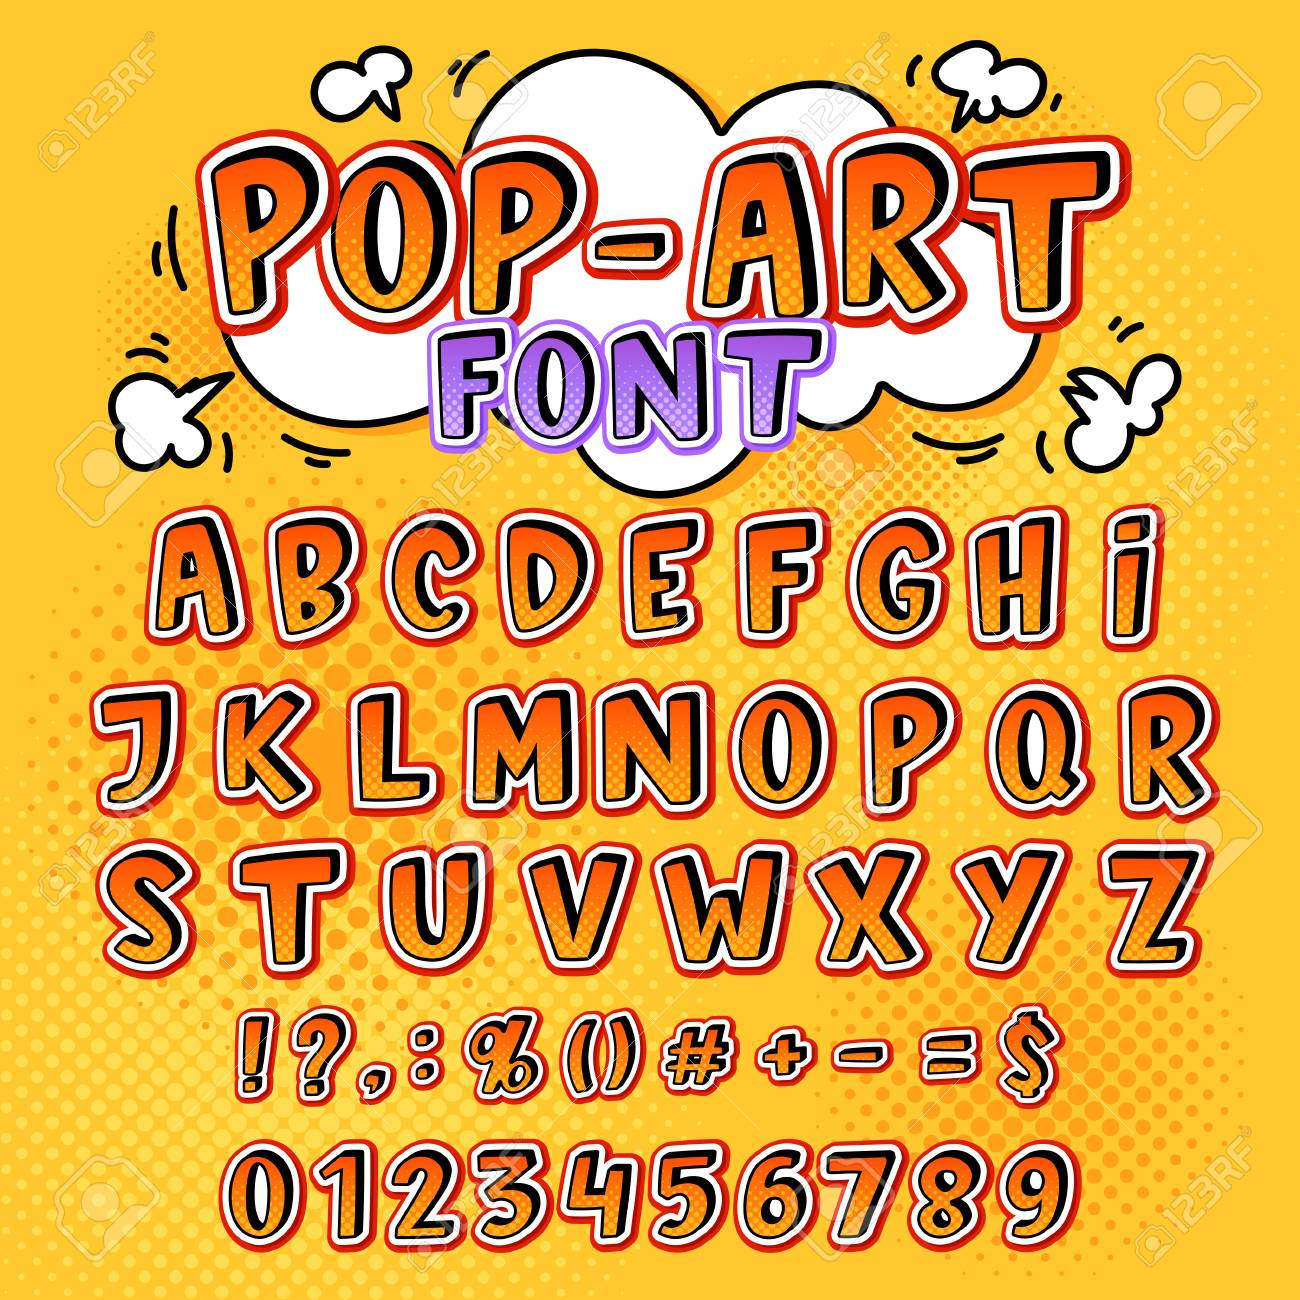 100126114-comic-font-vector-cartoon-alphabet-letters-in-pop-art-style-and-alphabetic-text-icons-for-typography Trends For Pop Art Letters @koolgadgetz.com.info